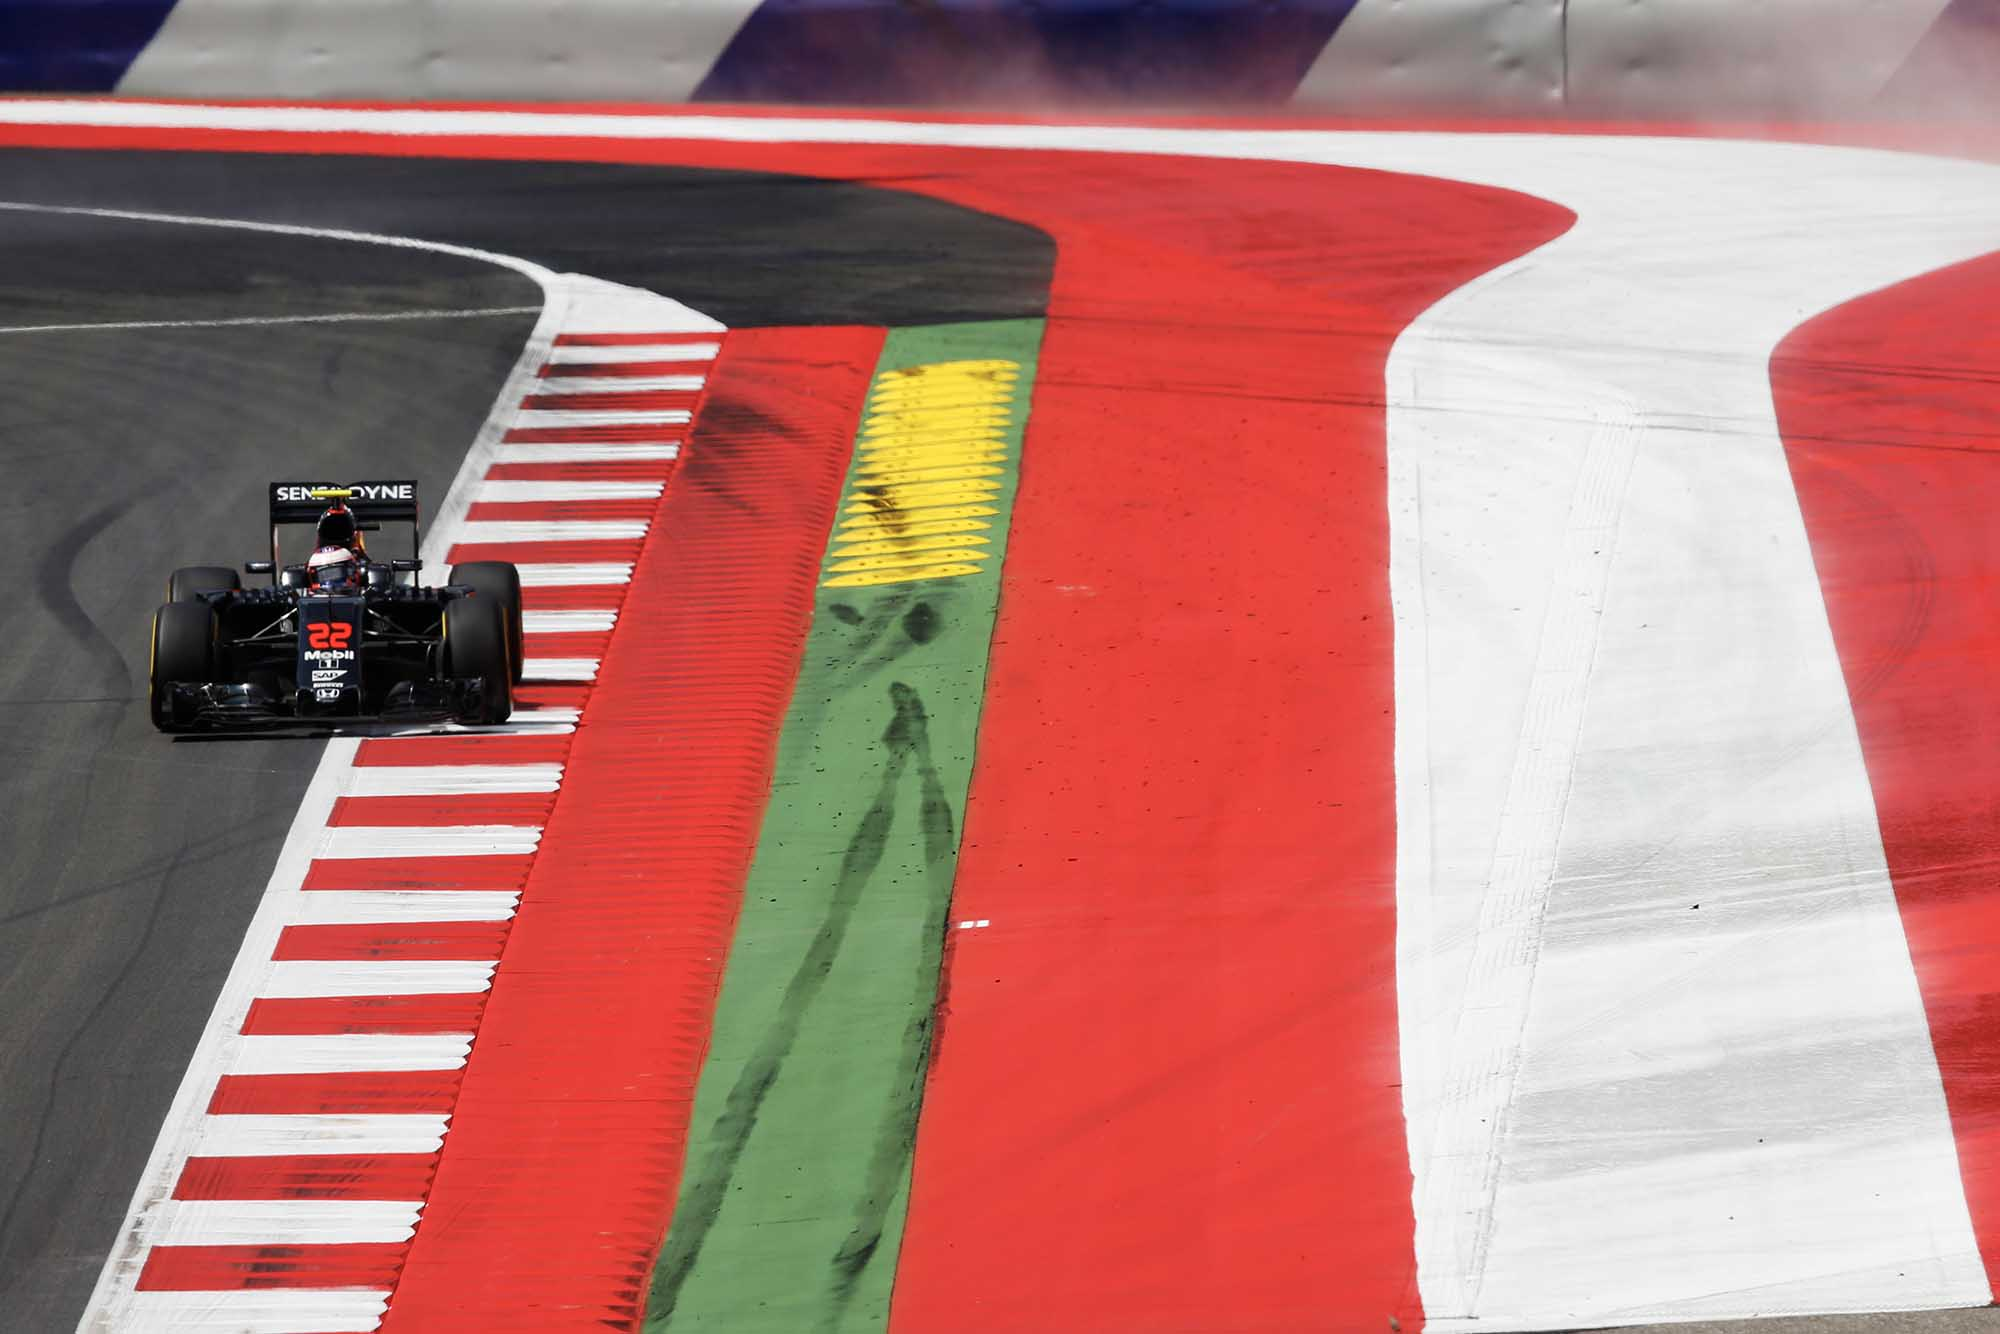 Jenson Button rounds the penultimate corner in his McLaren-Honda during the 2016 Austrian Grand Prix Red Bull Ring